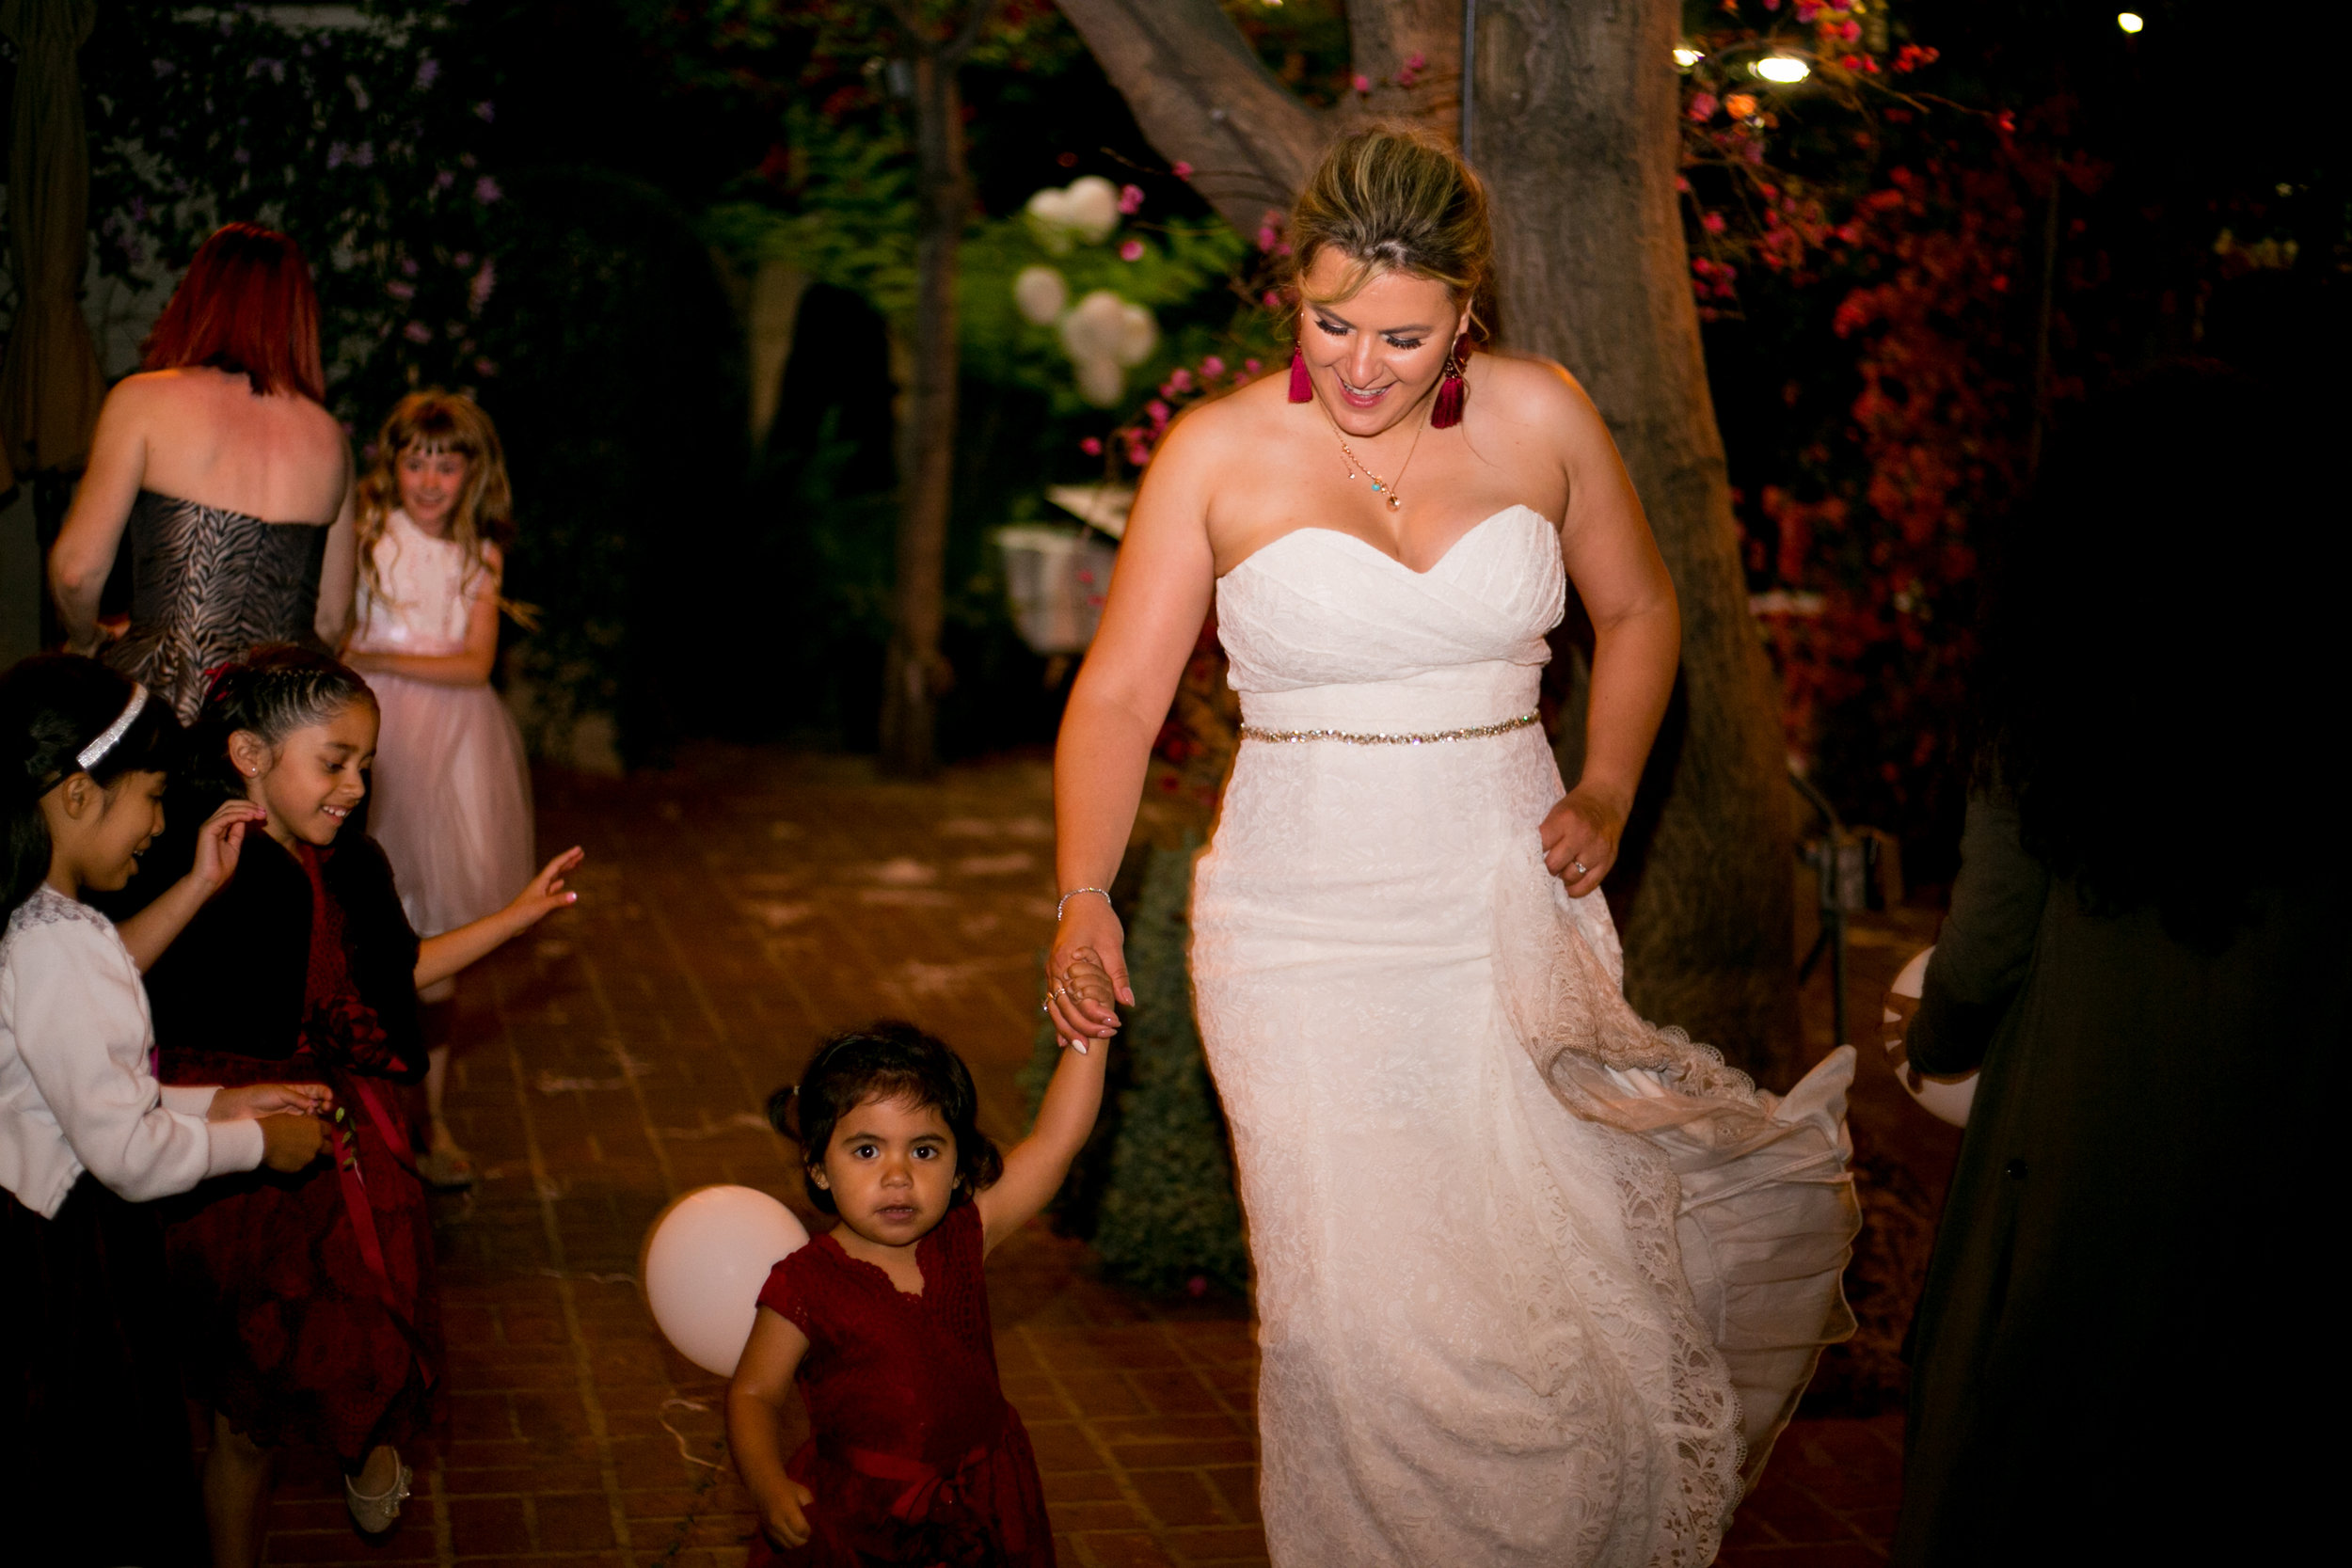 35-2019-May-wedding-ana-web.jpg